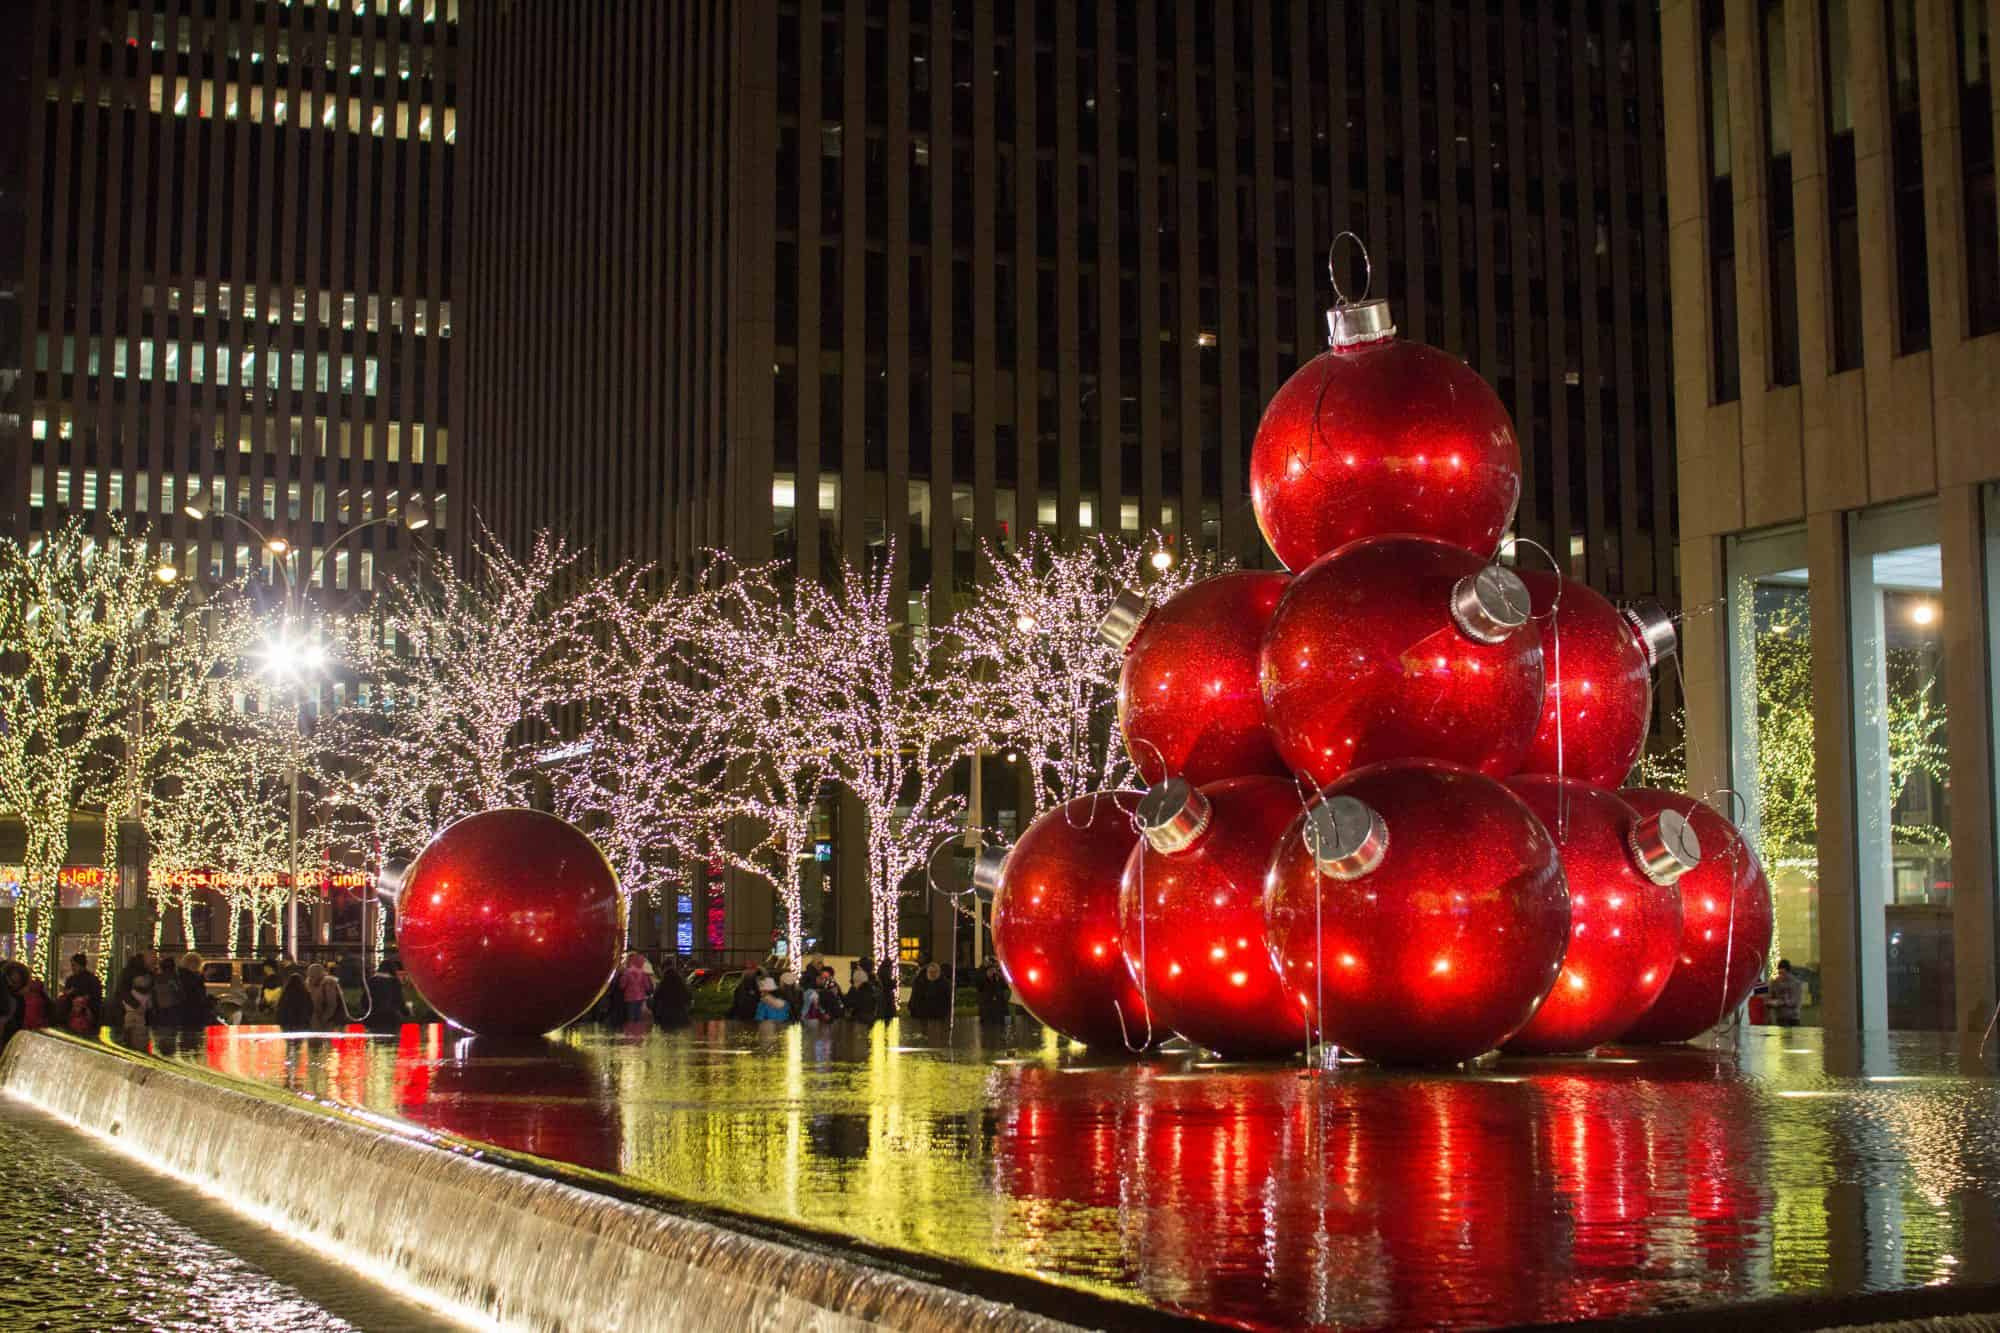 Things to do for Christmas: Explore Local Holiday Activities